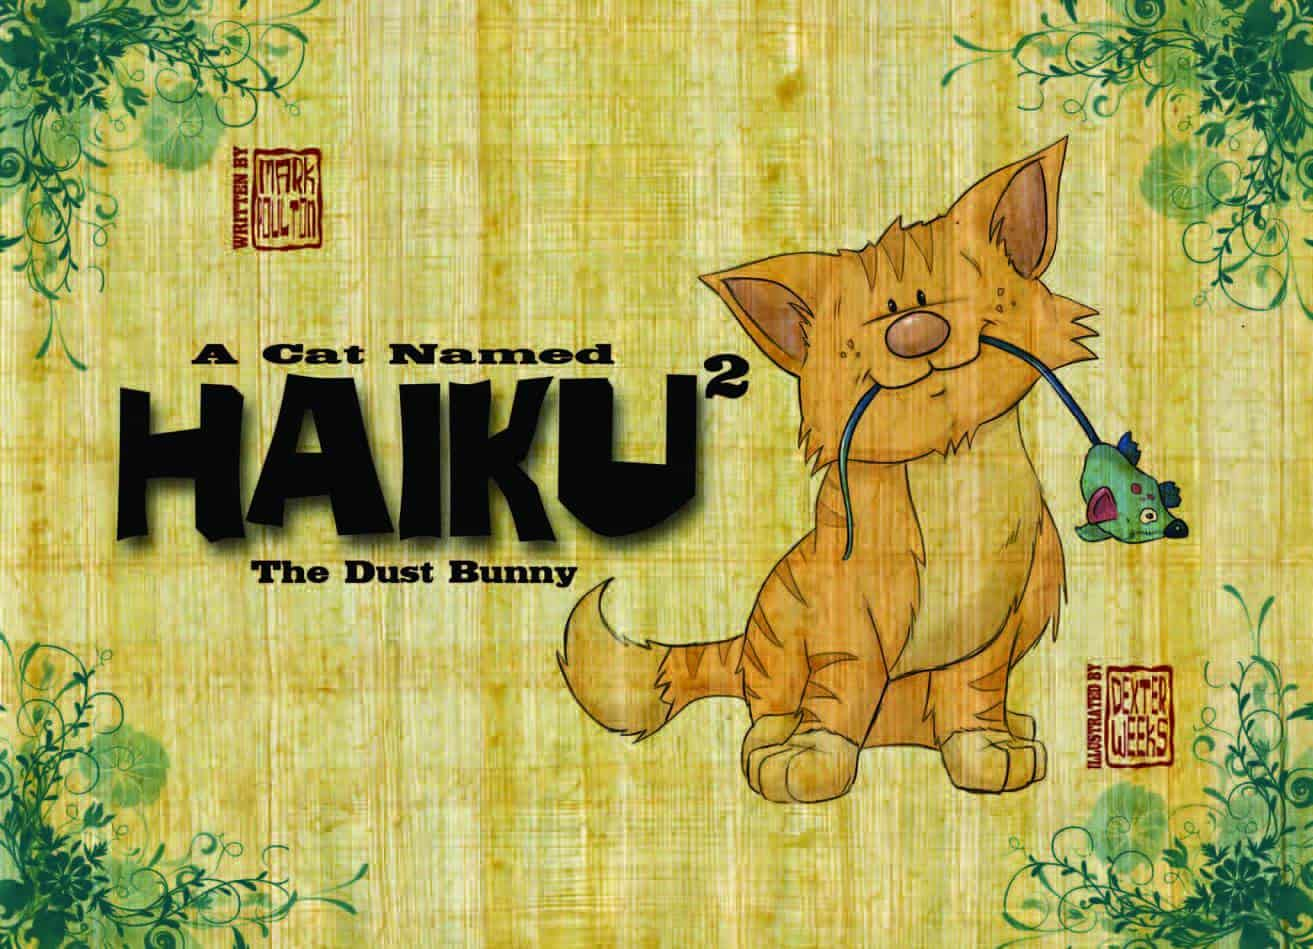 A Cat Named Haiku 2: The Dust Bunny 2